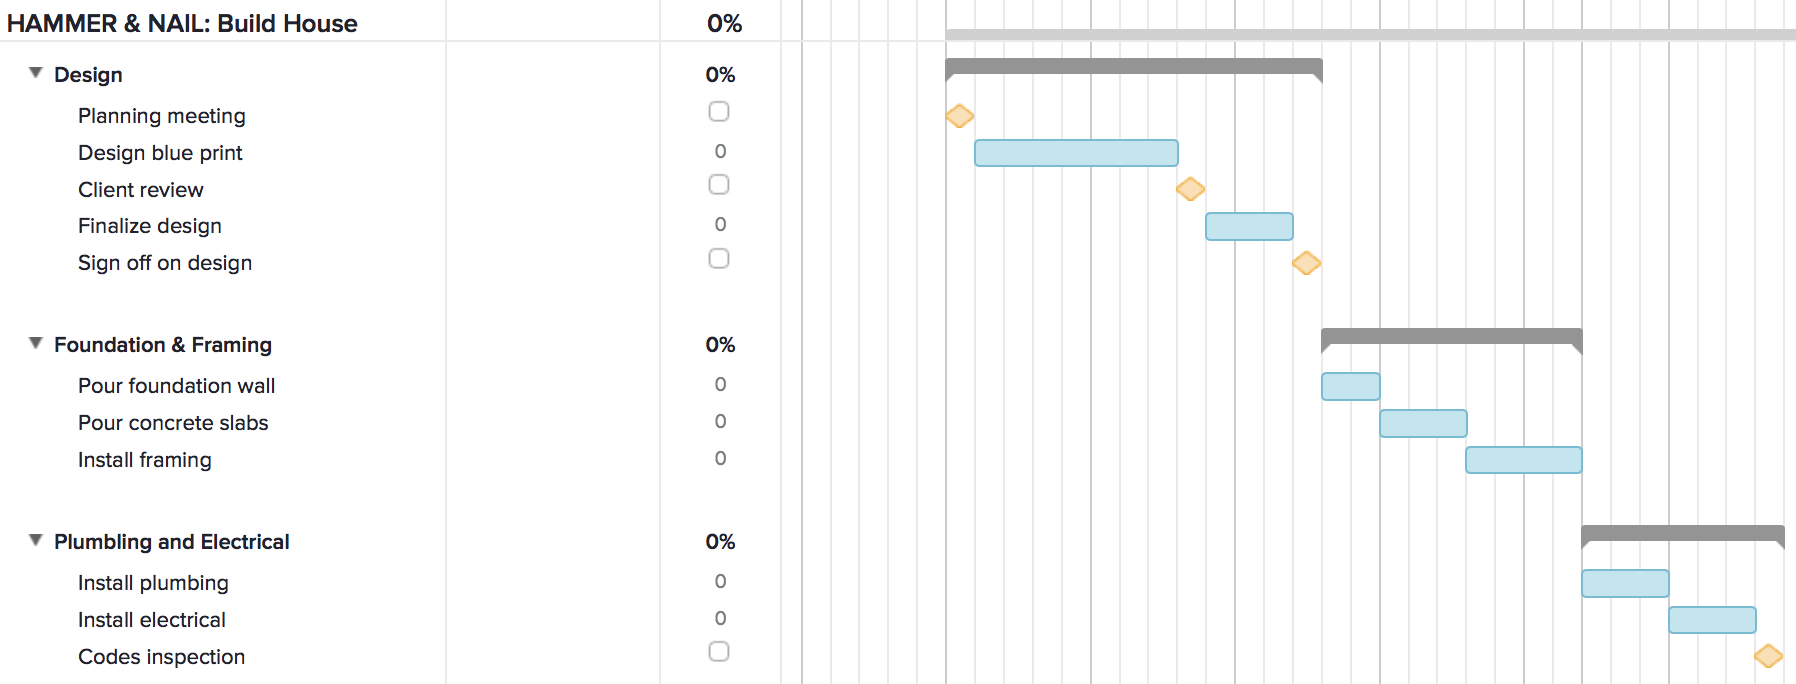 project management gantt chart example teamgantt